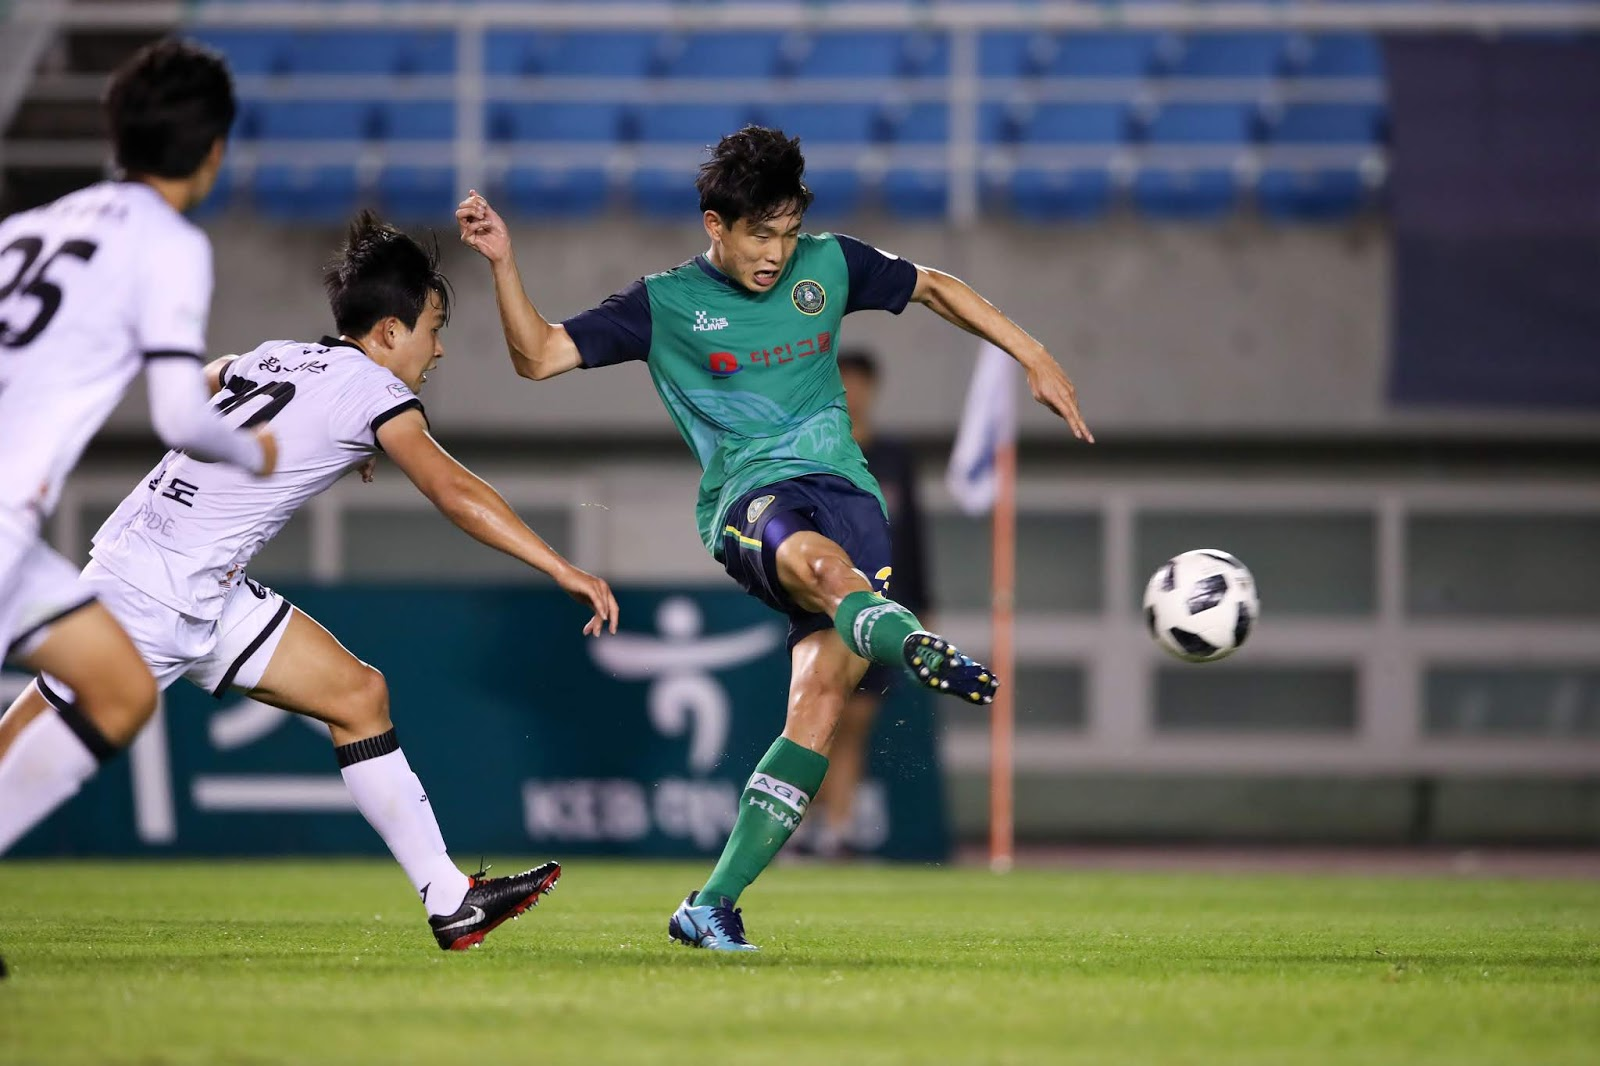 Preview: Ansan Greeners vs Bucheon 1995 K League 2 Kim Hyeon-tae